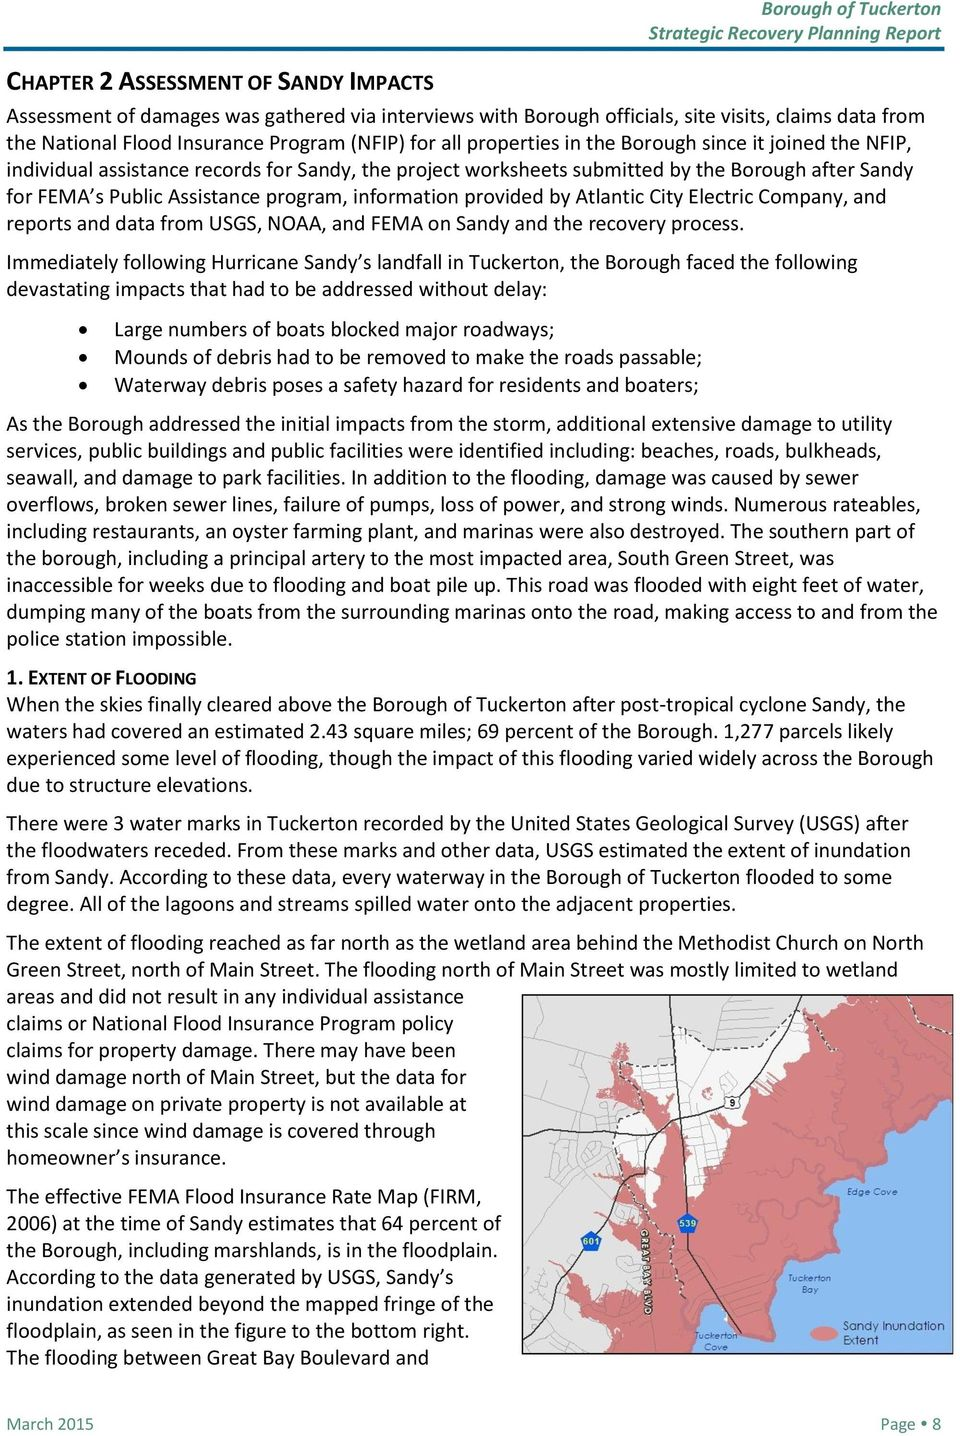 program, information provided by Atlantic City Electric Company, and reports and data from USGS, NOAA, and FEMA on Sandy and the recovery process.